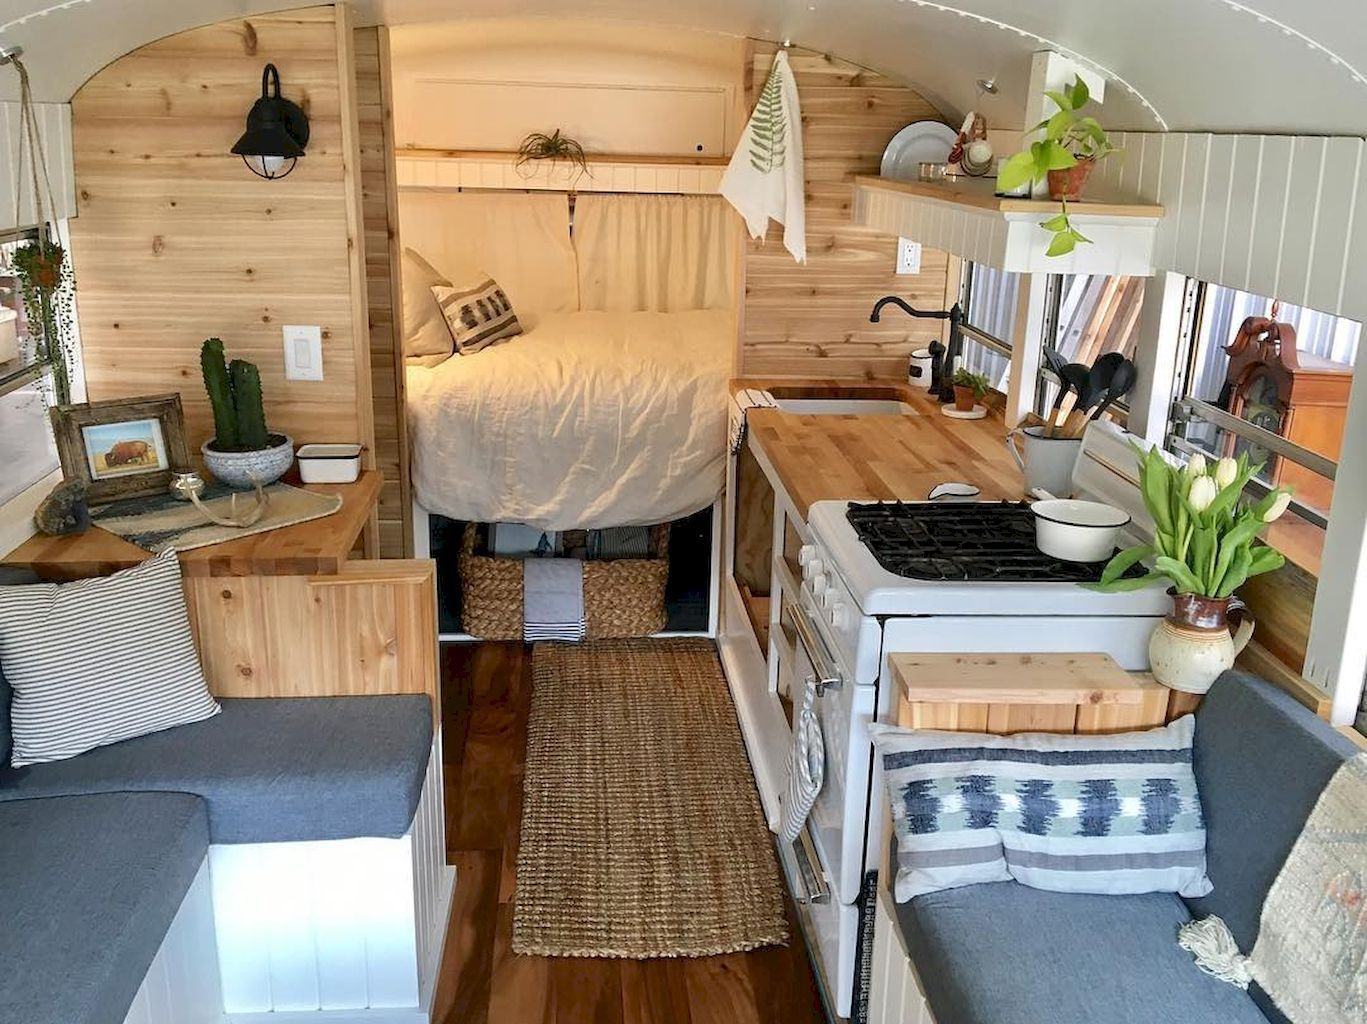 School Bus Camper Interior And Plans Ideas To Nostalgic Livingmarch 20 Wild Wonderful